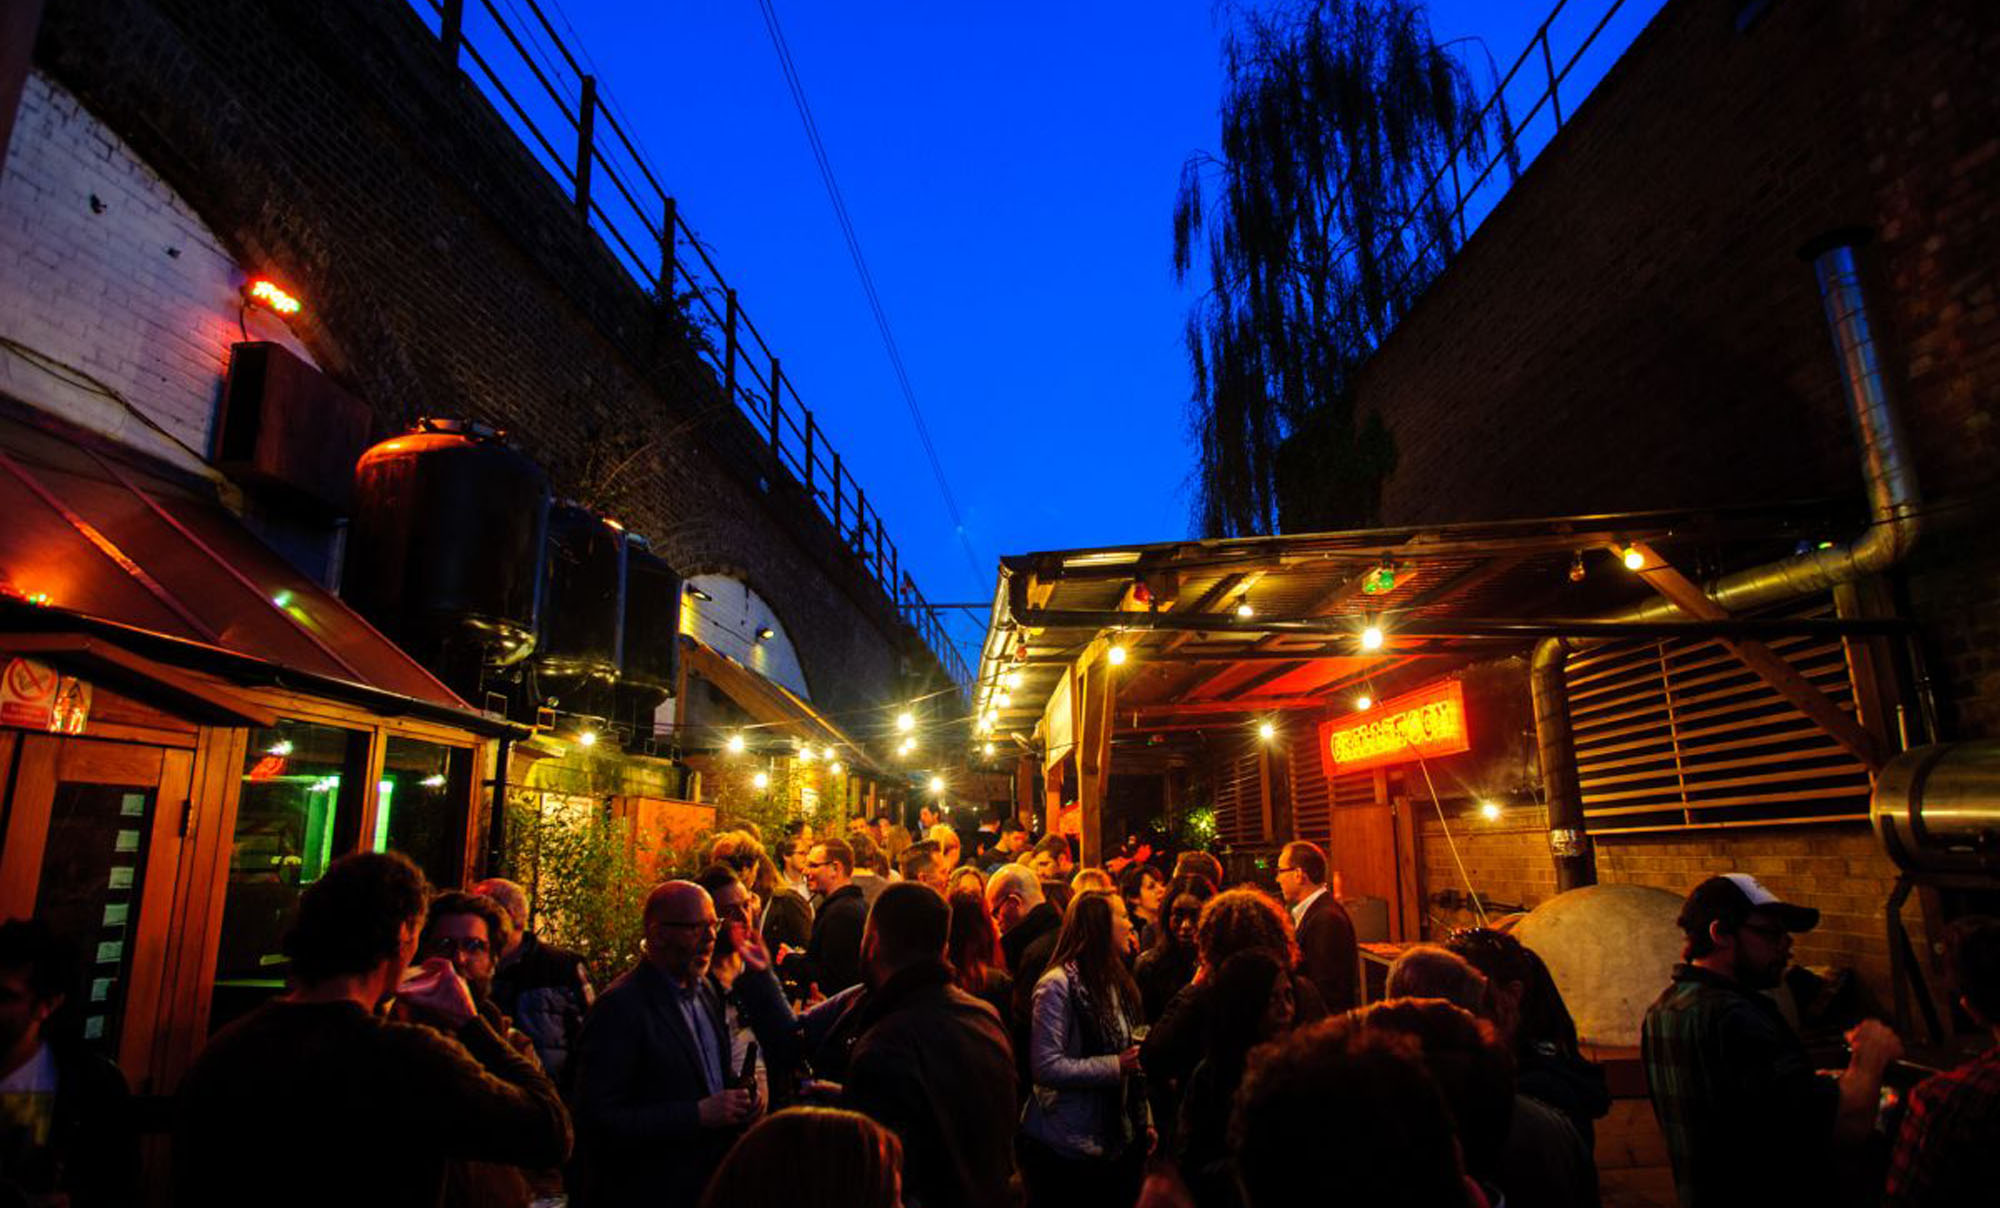 Londonfields brewery event space nightclub venue outside smoking area Christmas party vibes